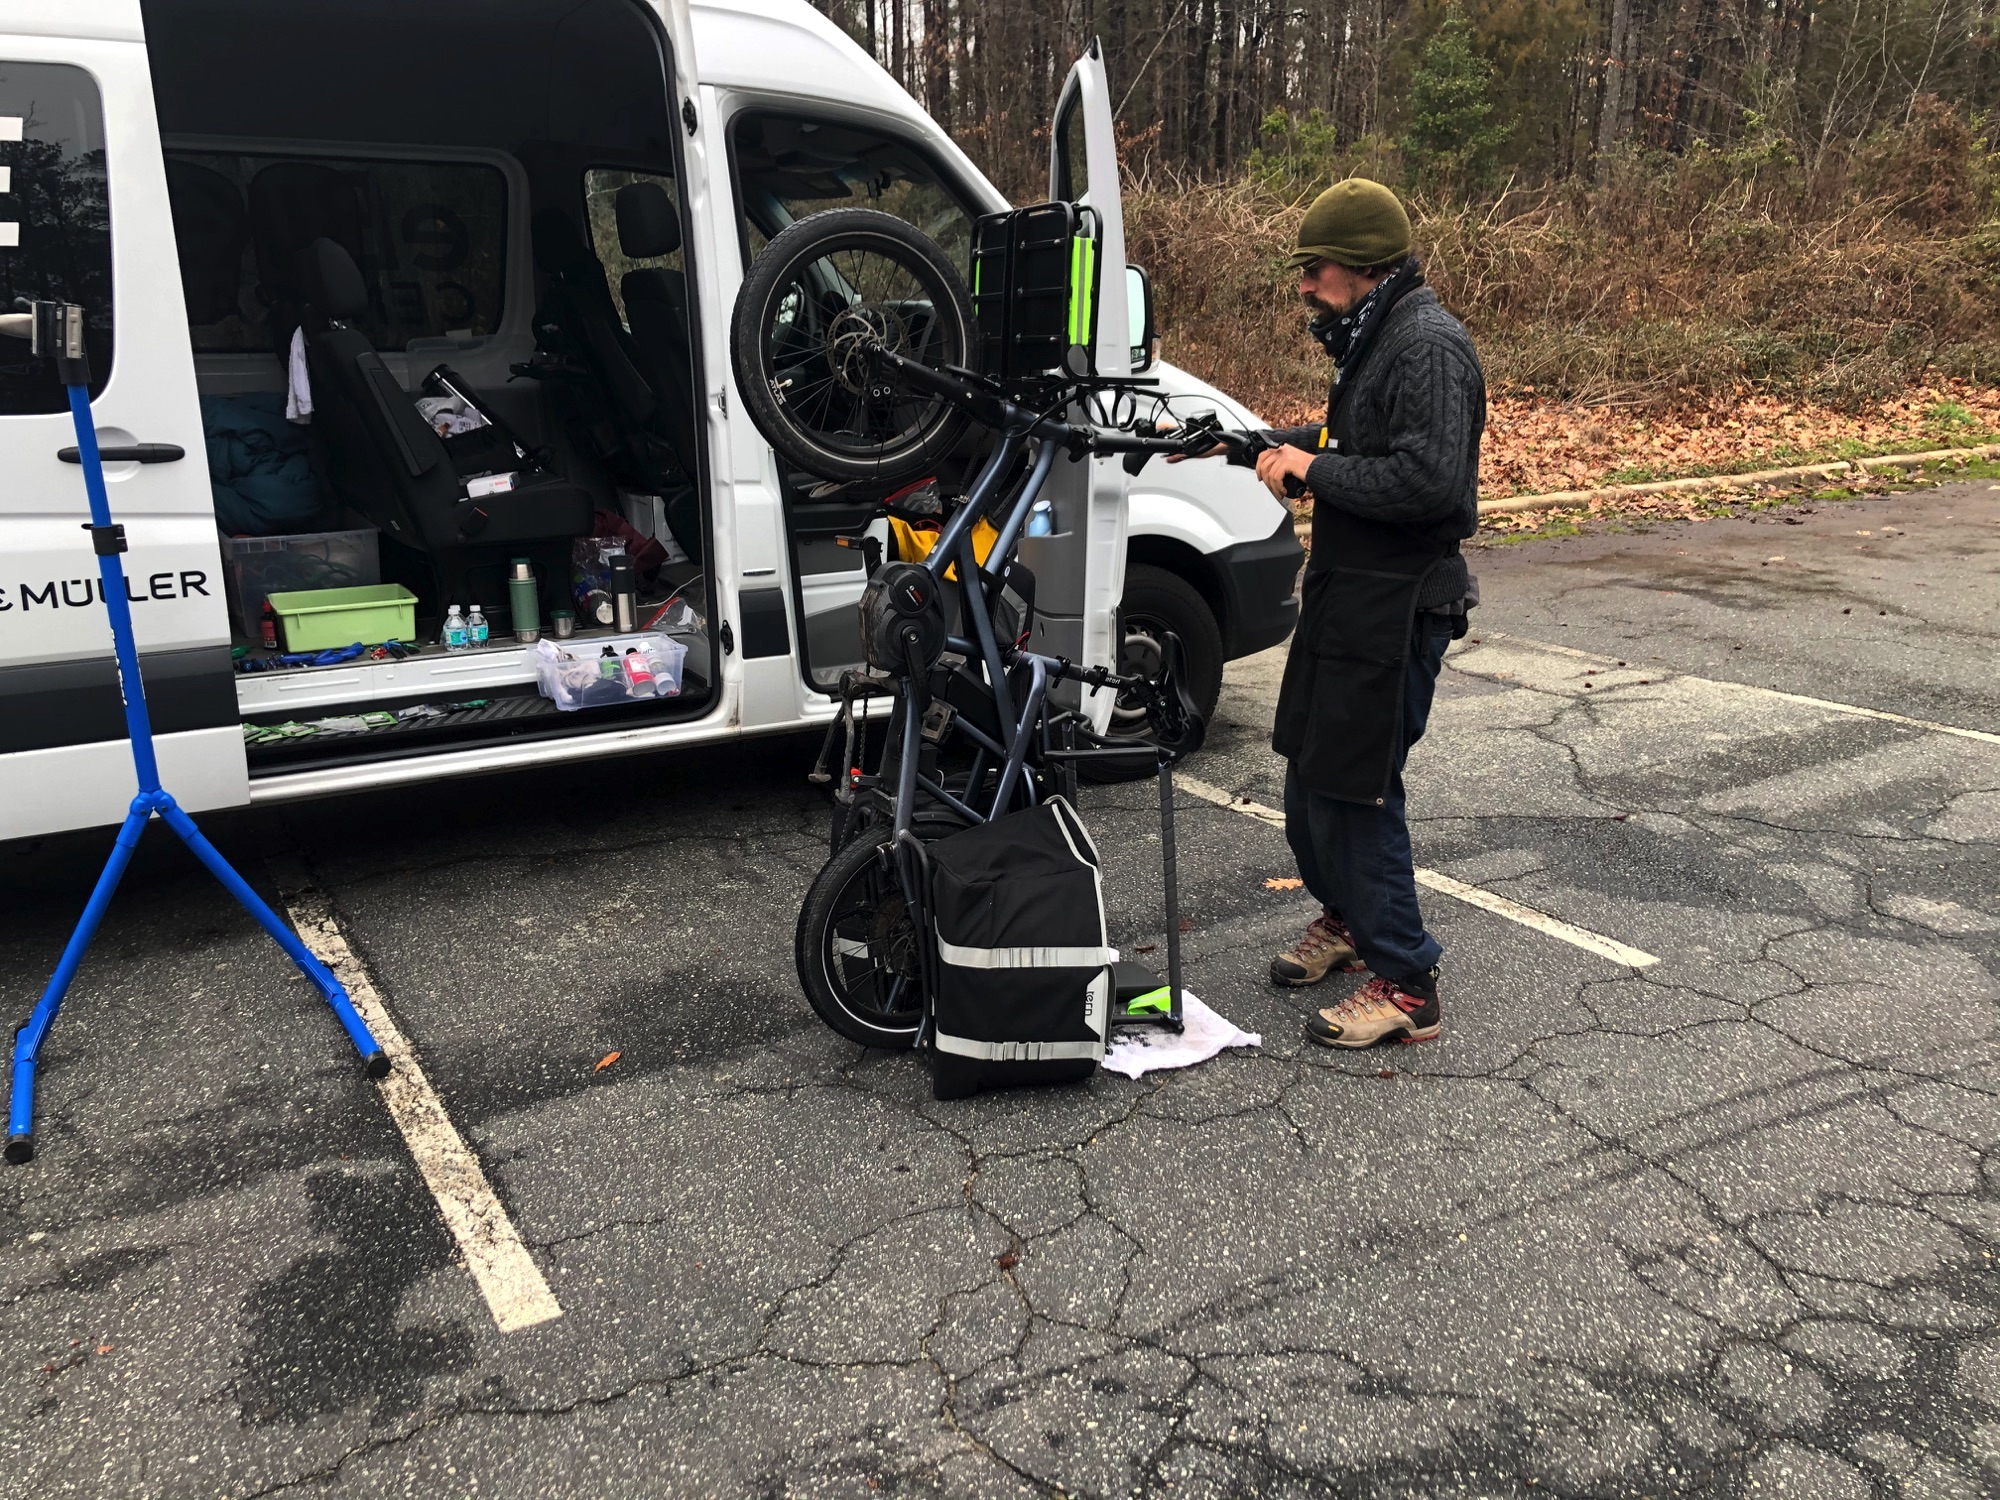 eBike Central in Durham NC, Electric Bicycle Service Meetup Location